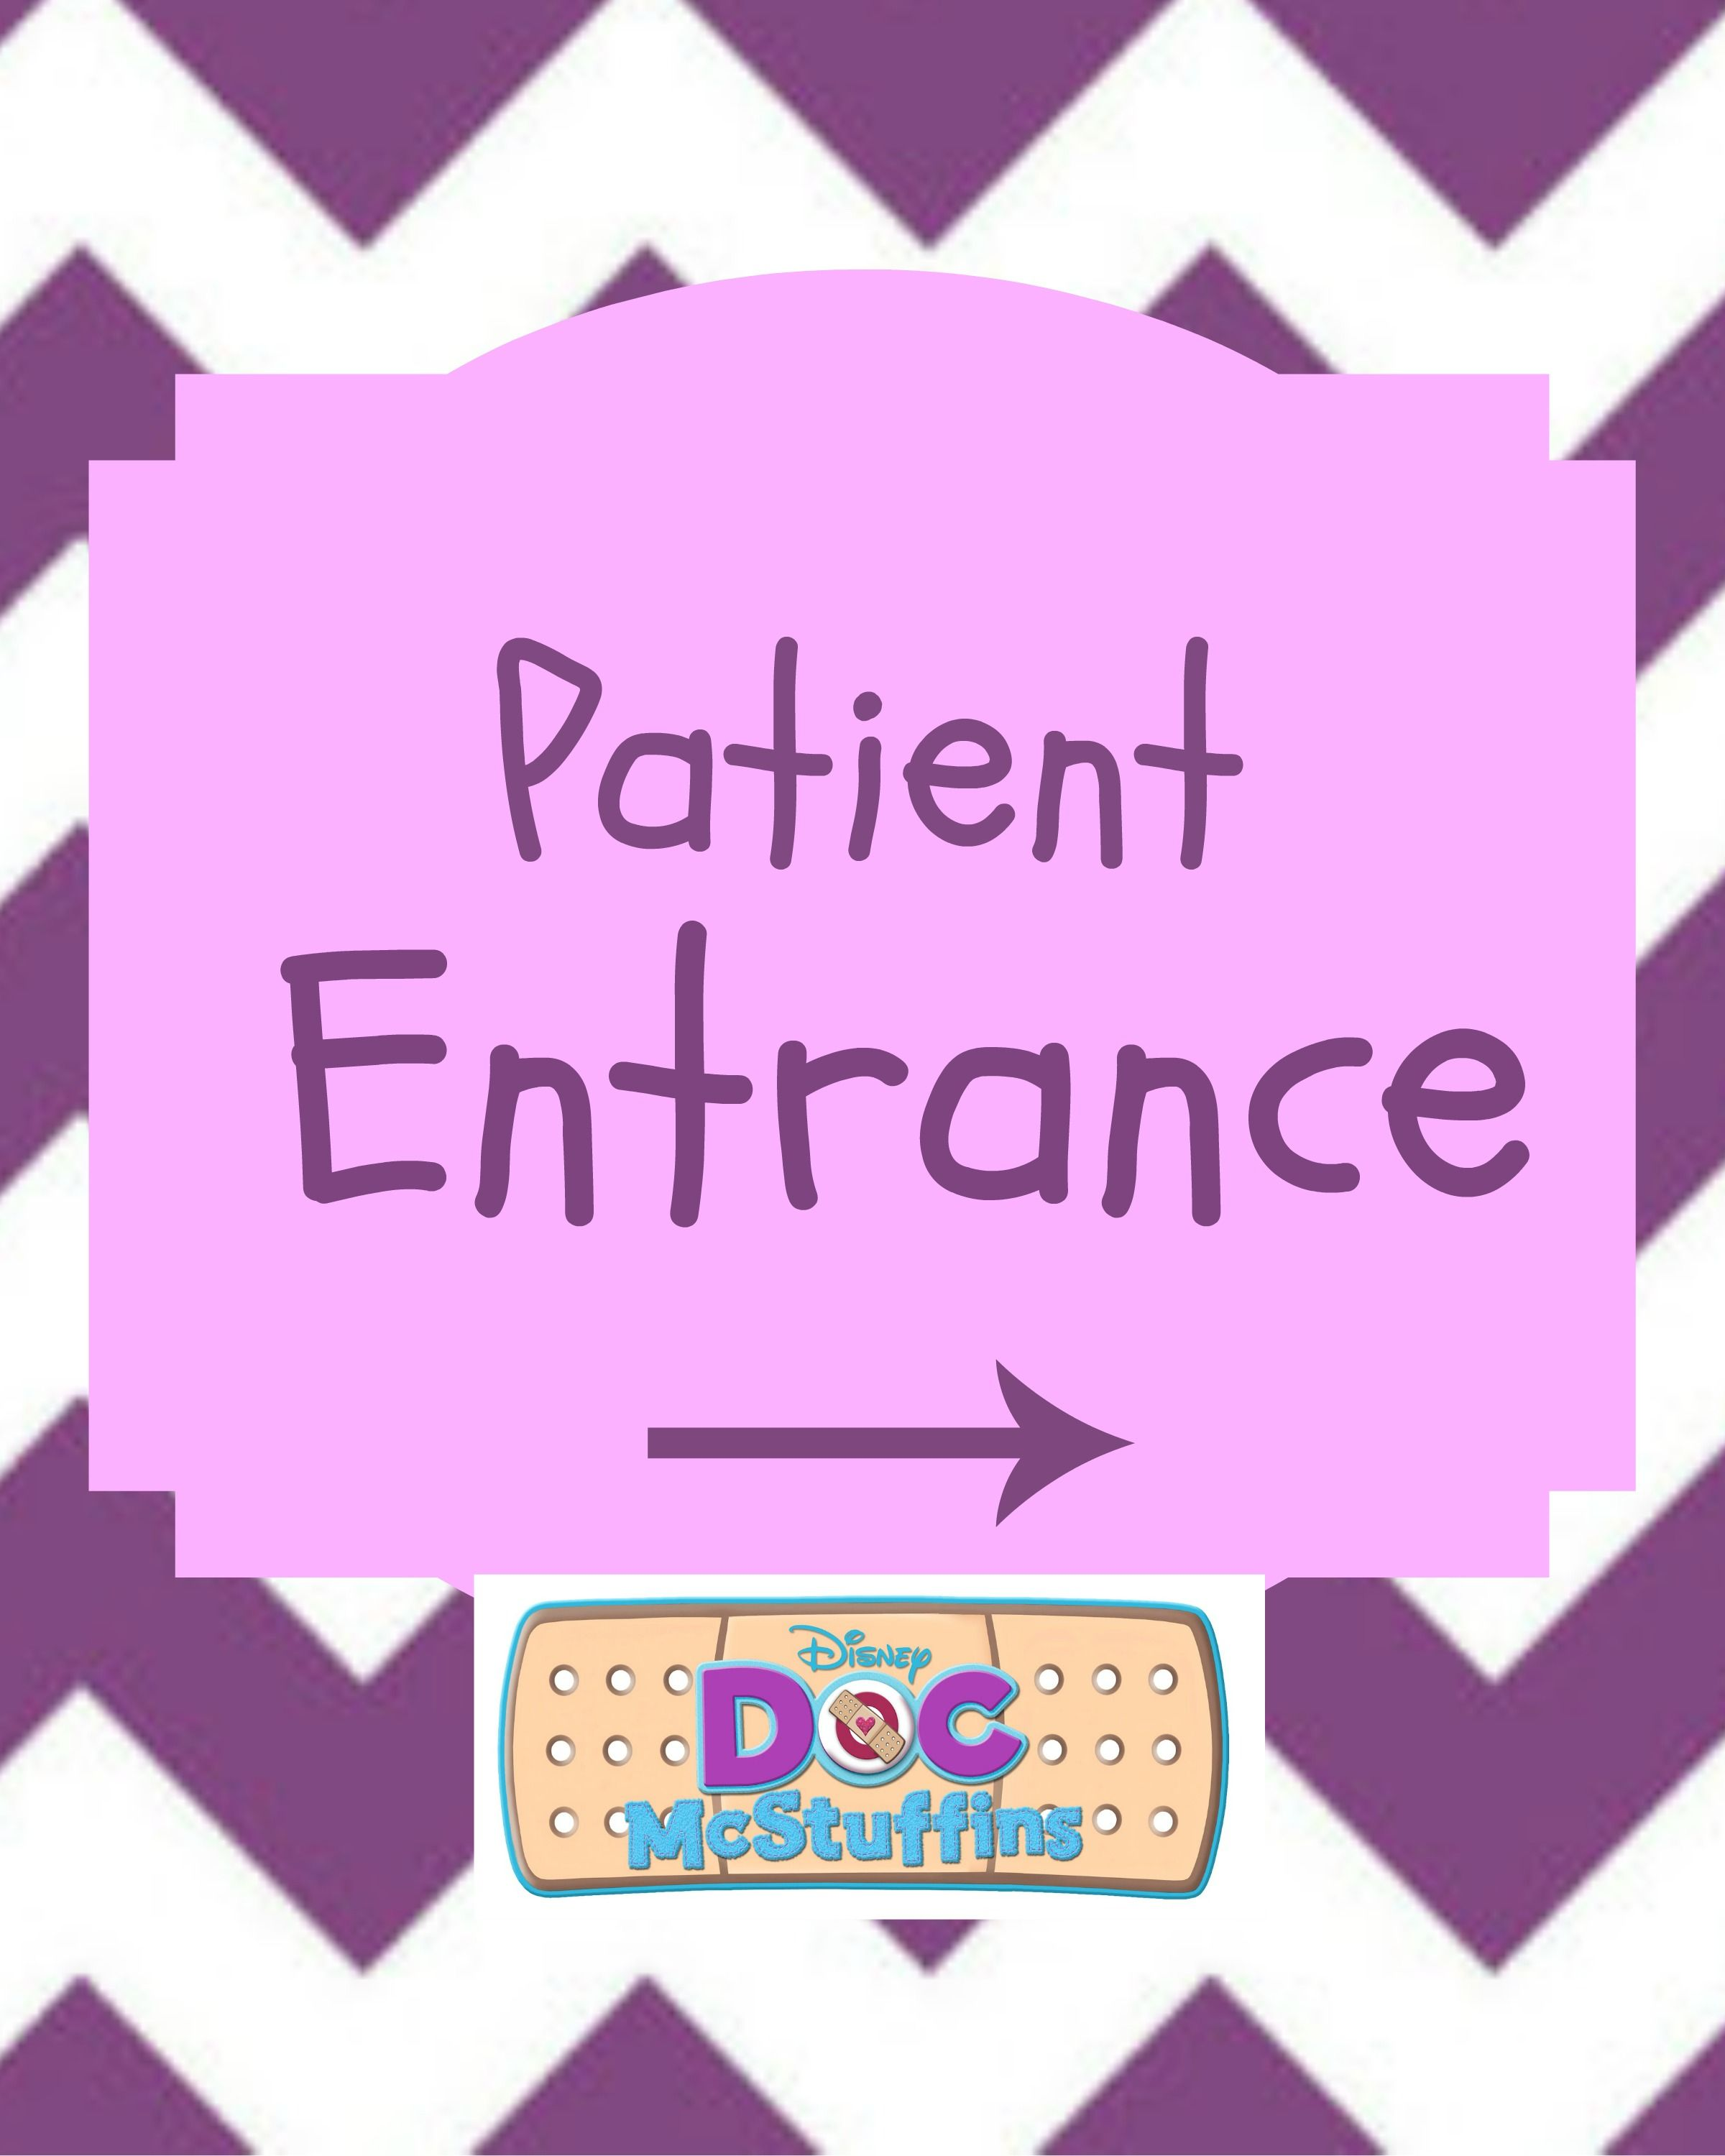 Doc Mcstuffins Party Sign Arewallace At Yahoocom To Purchase Party